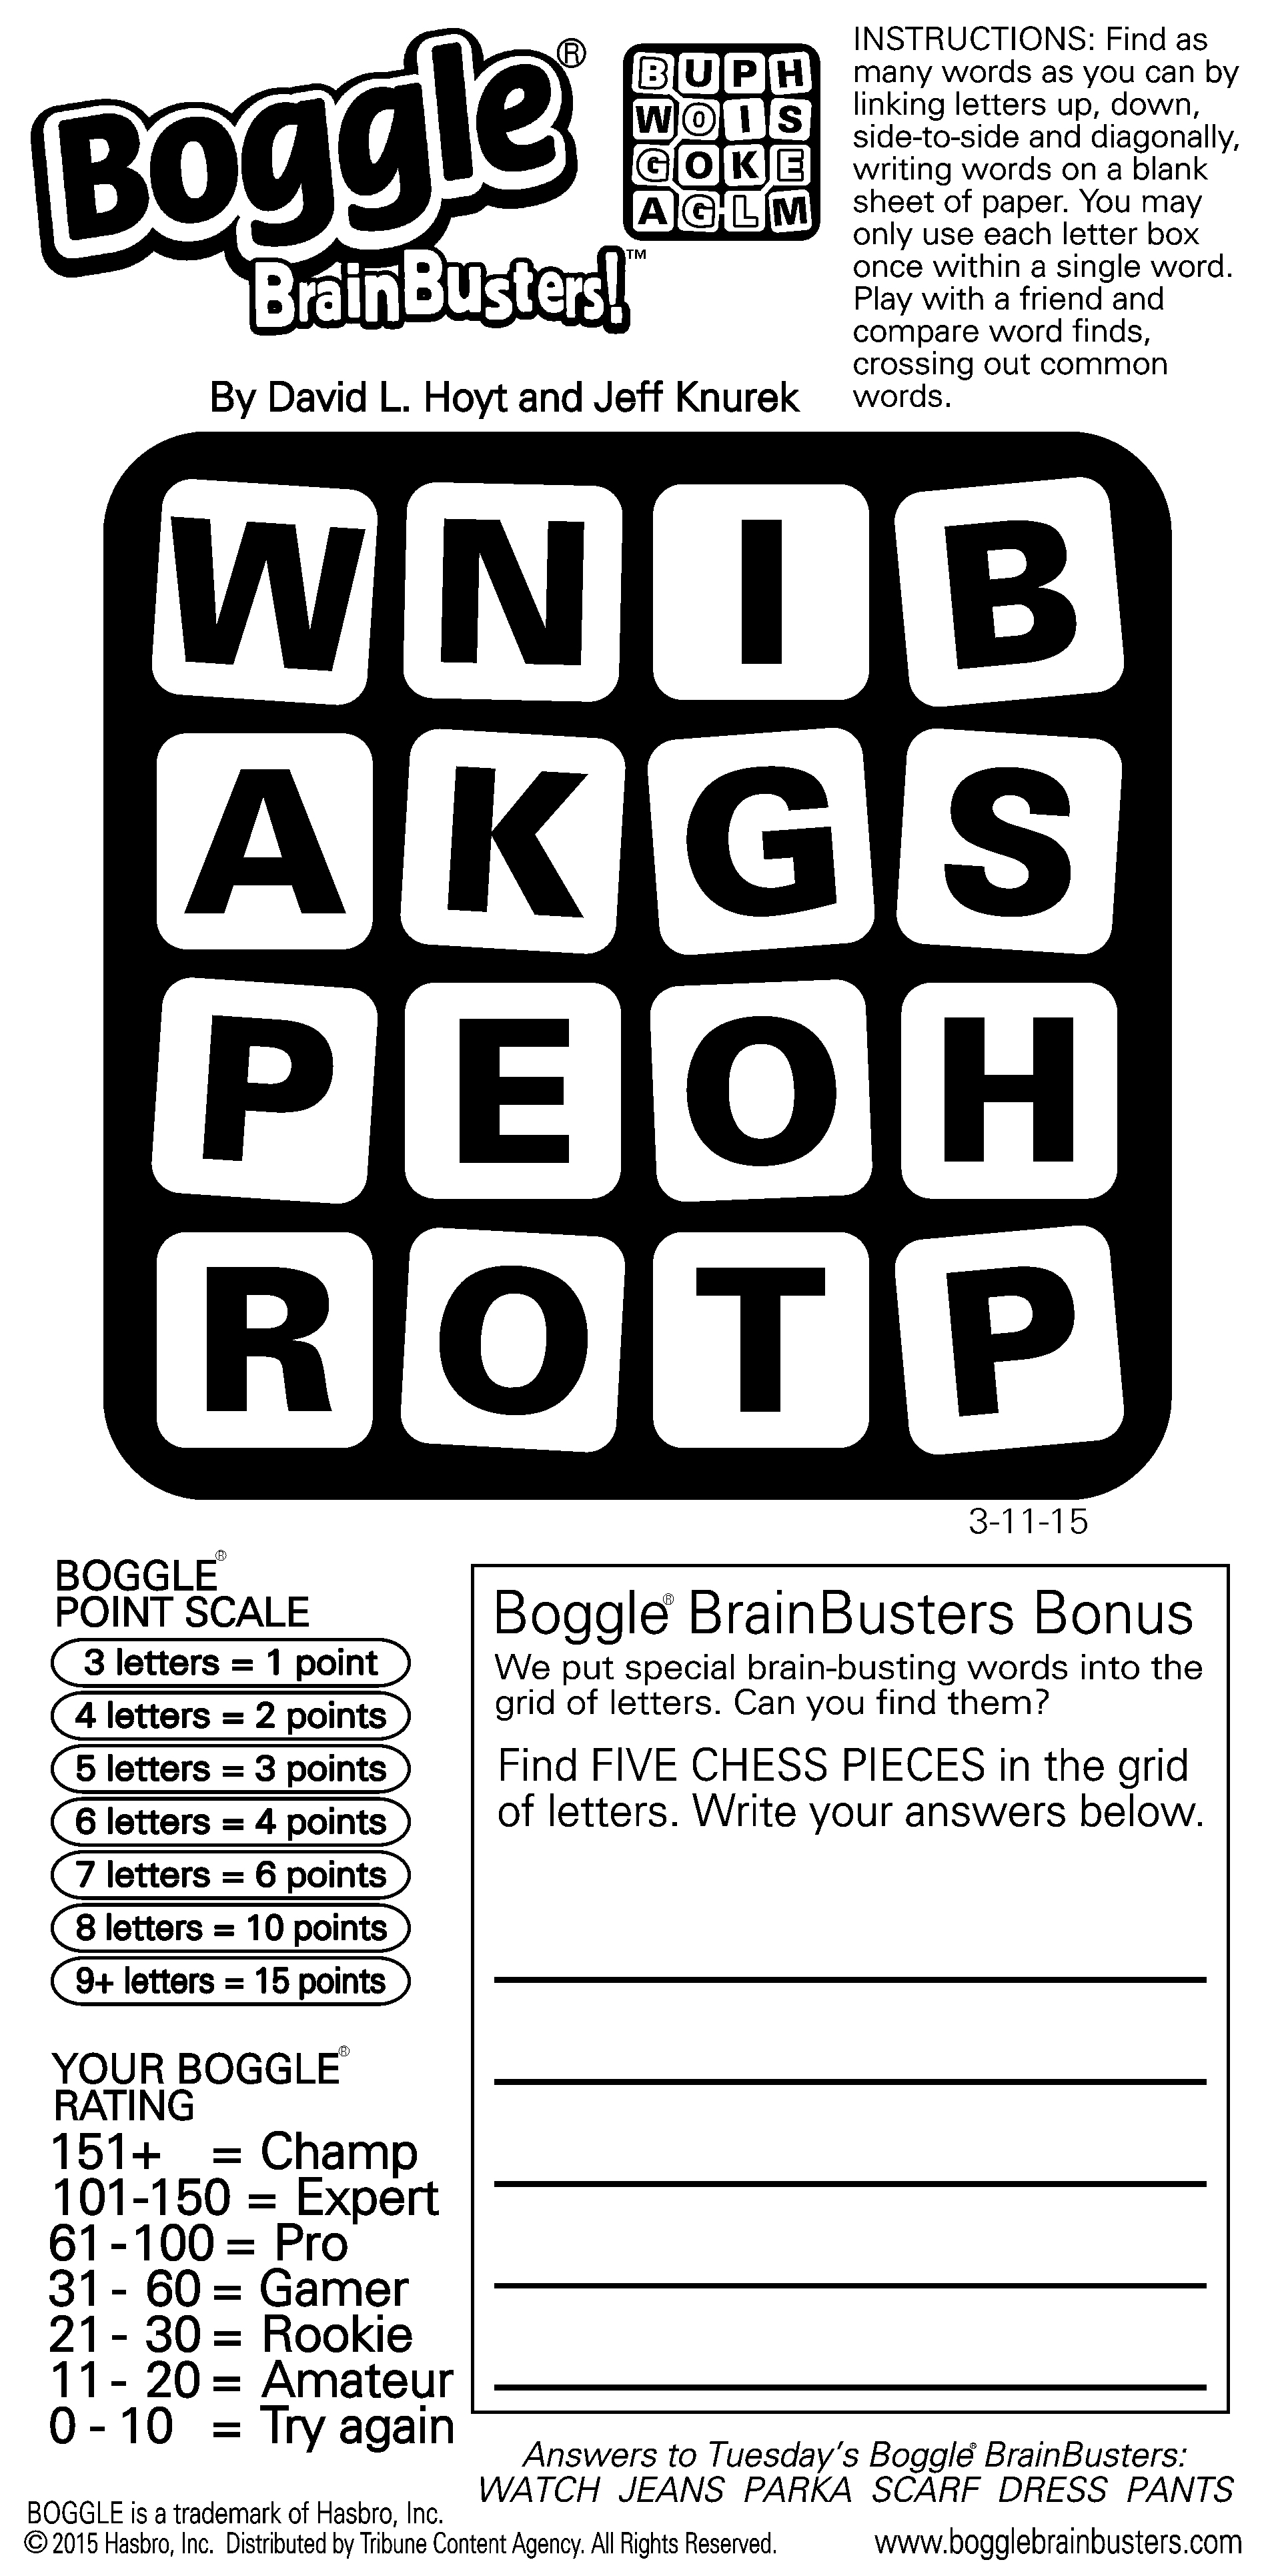 Sample Of Boggle Brainbusters Daily Vertical